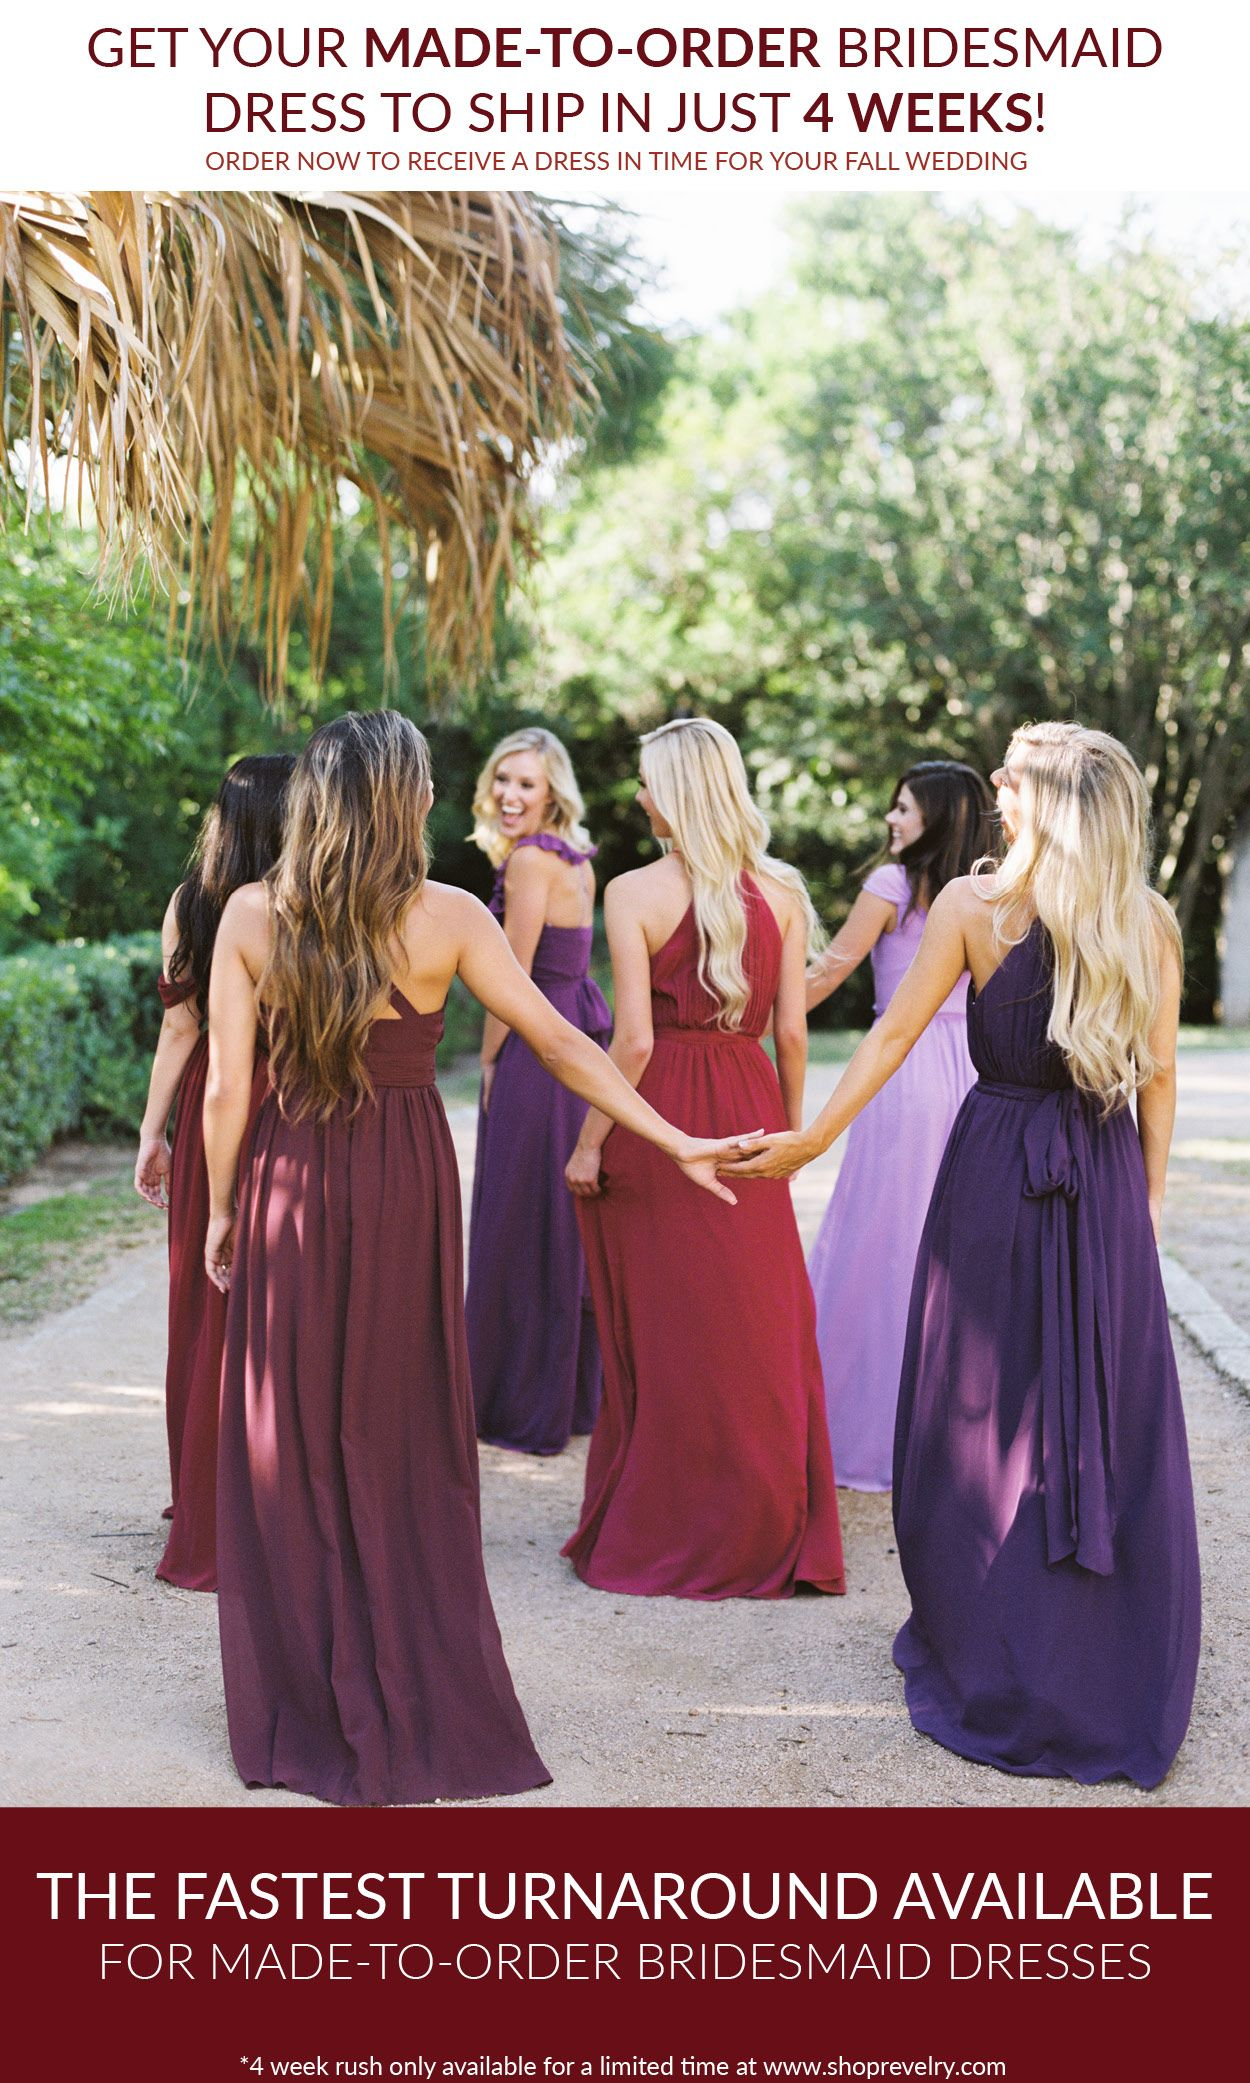 Its not too late get your made to order bridesmaid dress to ship get your made to order bridesmaid dress to ship in just 4 weeks order now to receive a dress in time for your fall wedding ombrellifo Images